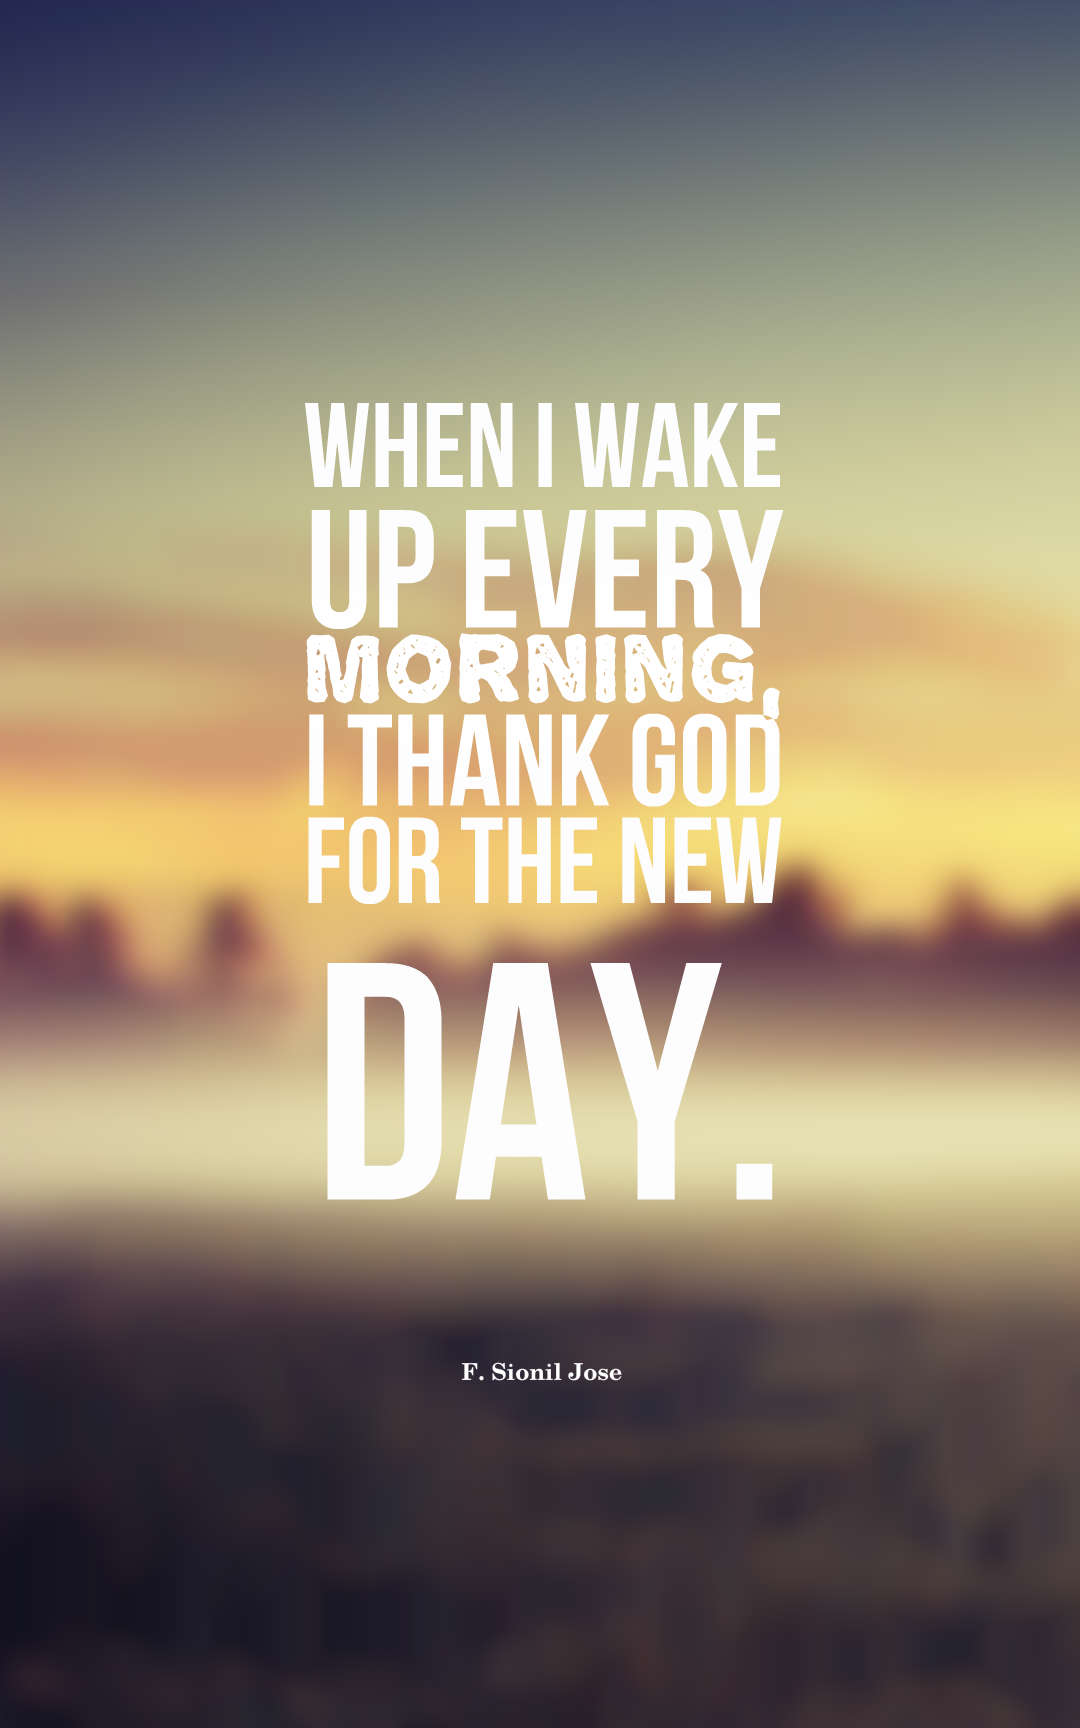 A New Day Quote : quote, Inspirational, Quotes, Sayings